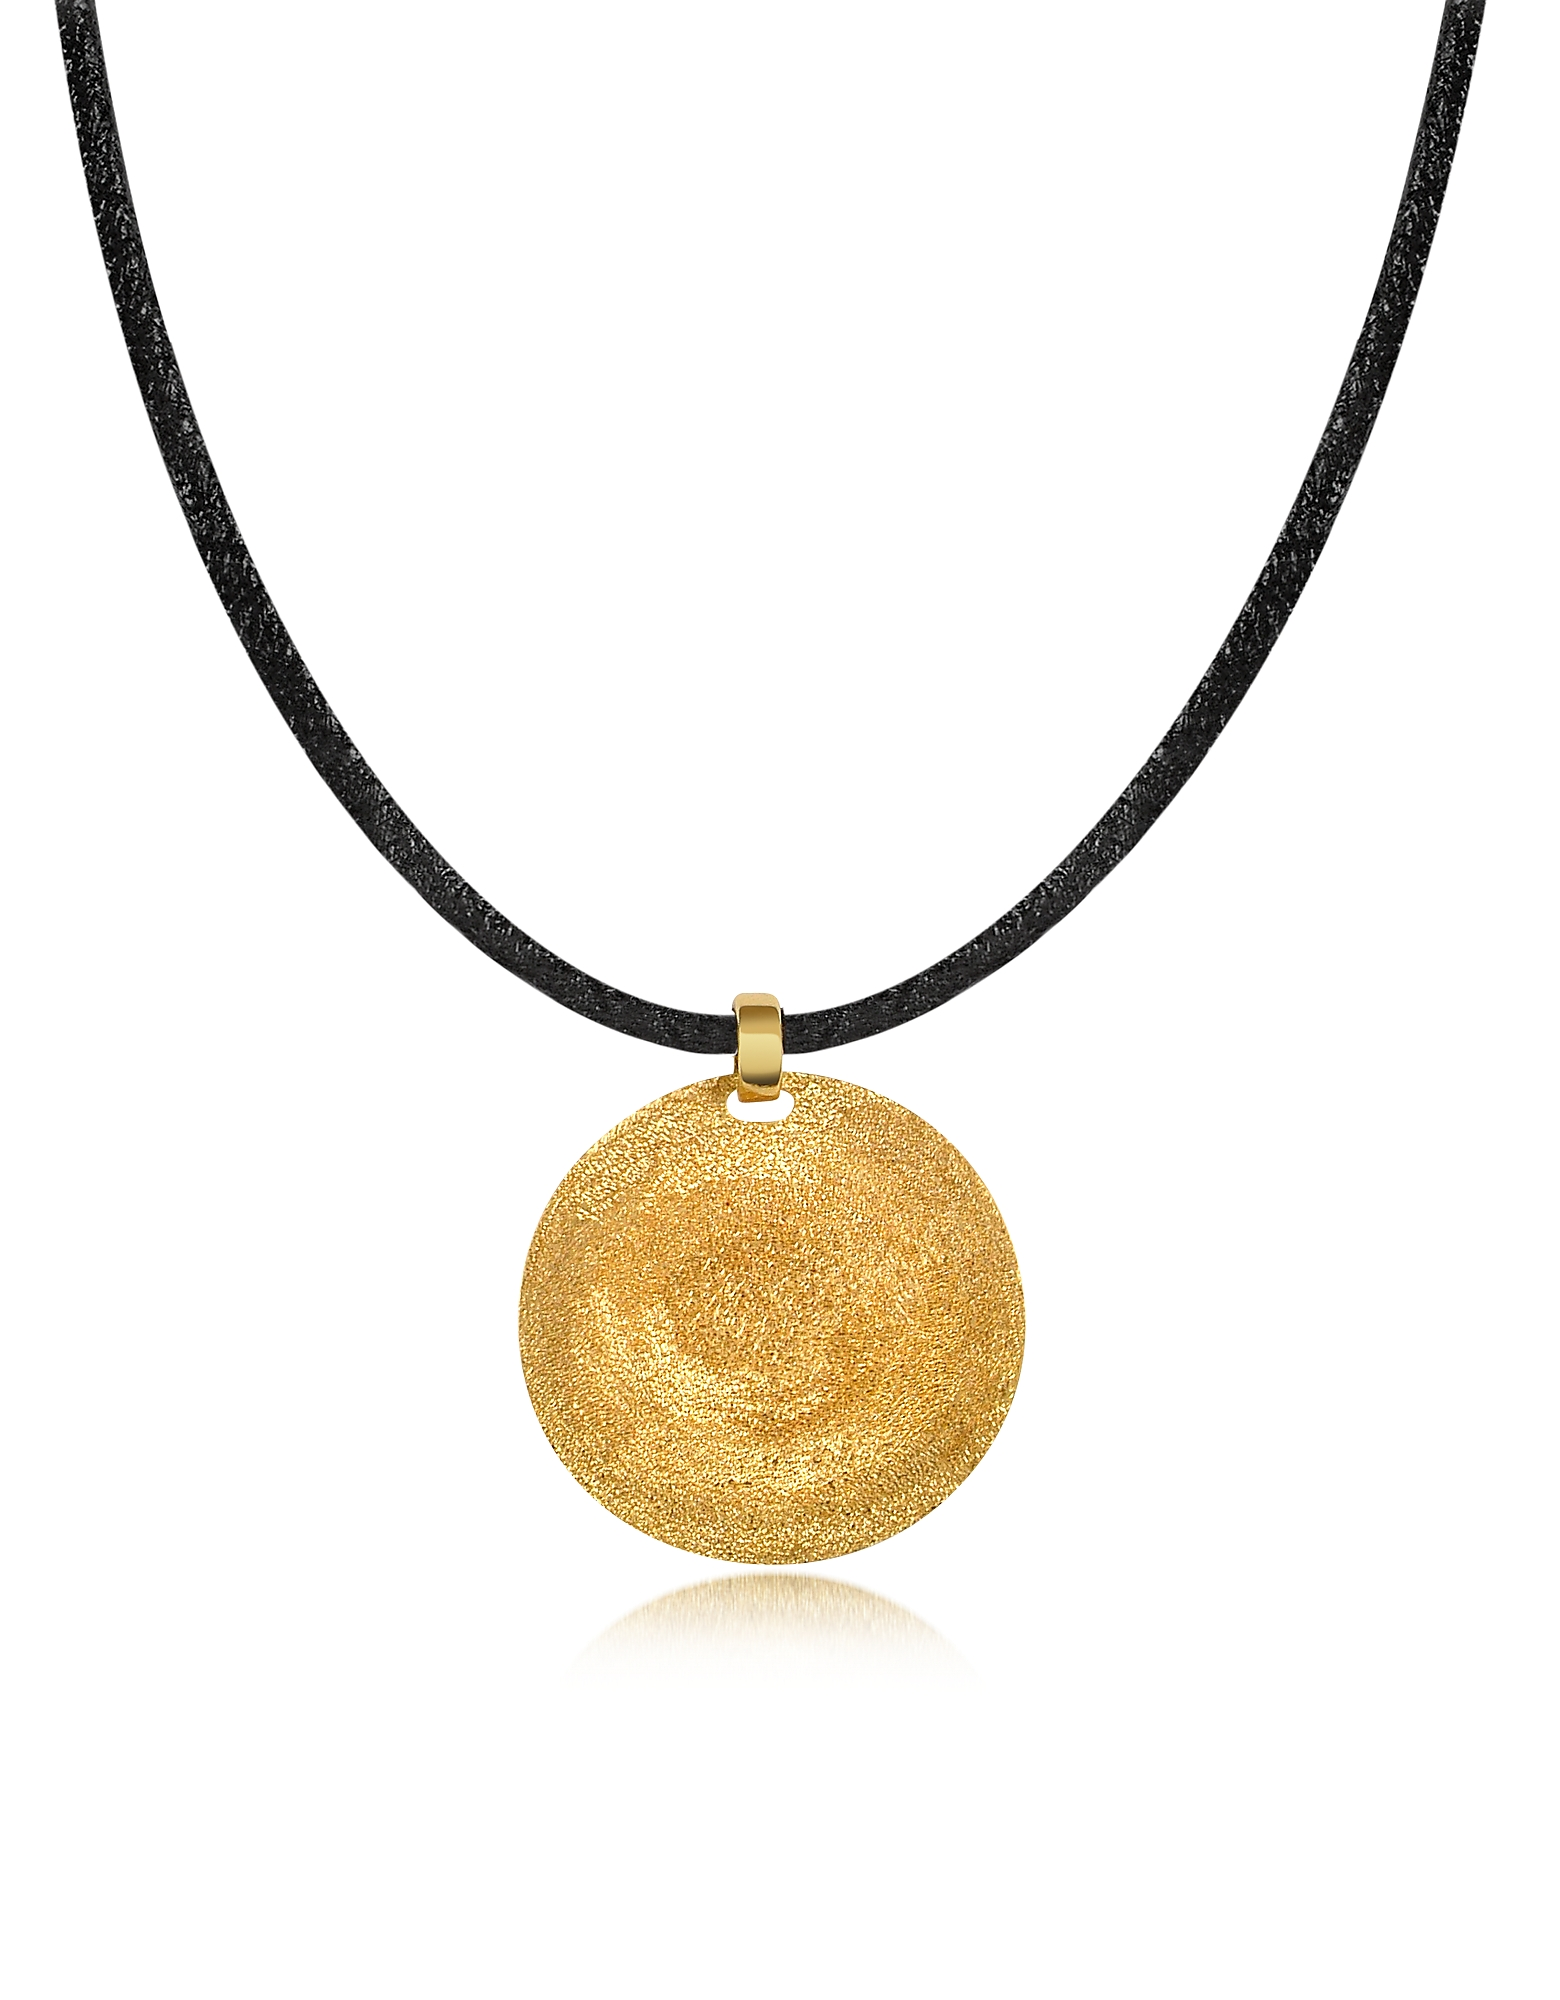 Stefano Patriarchi Necklaces, Golden Silver Etched Small Round Pendant w/Leather Lace